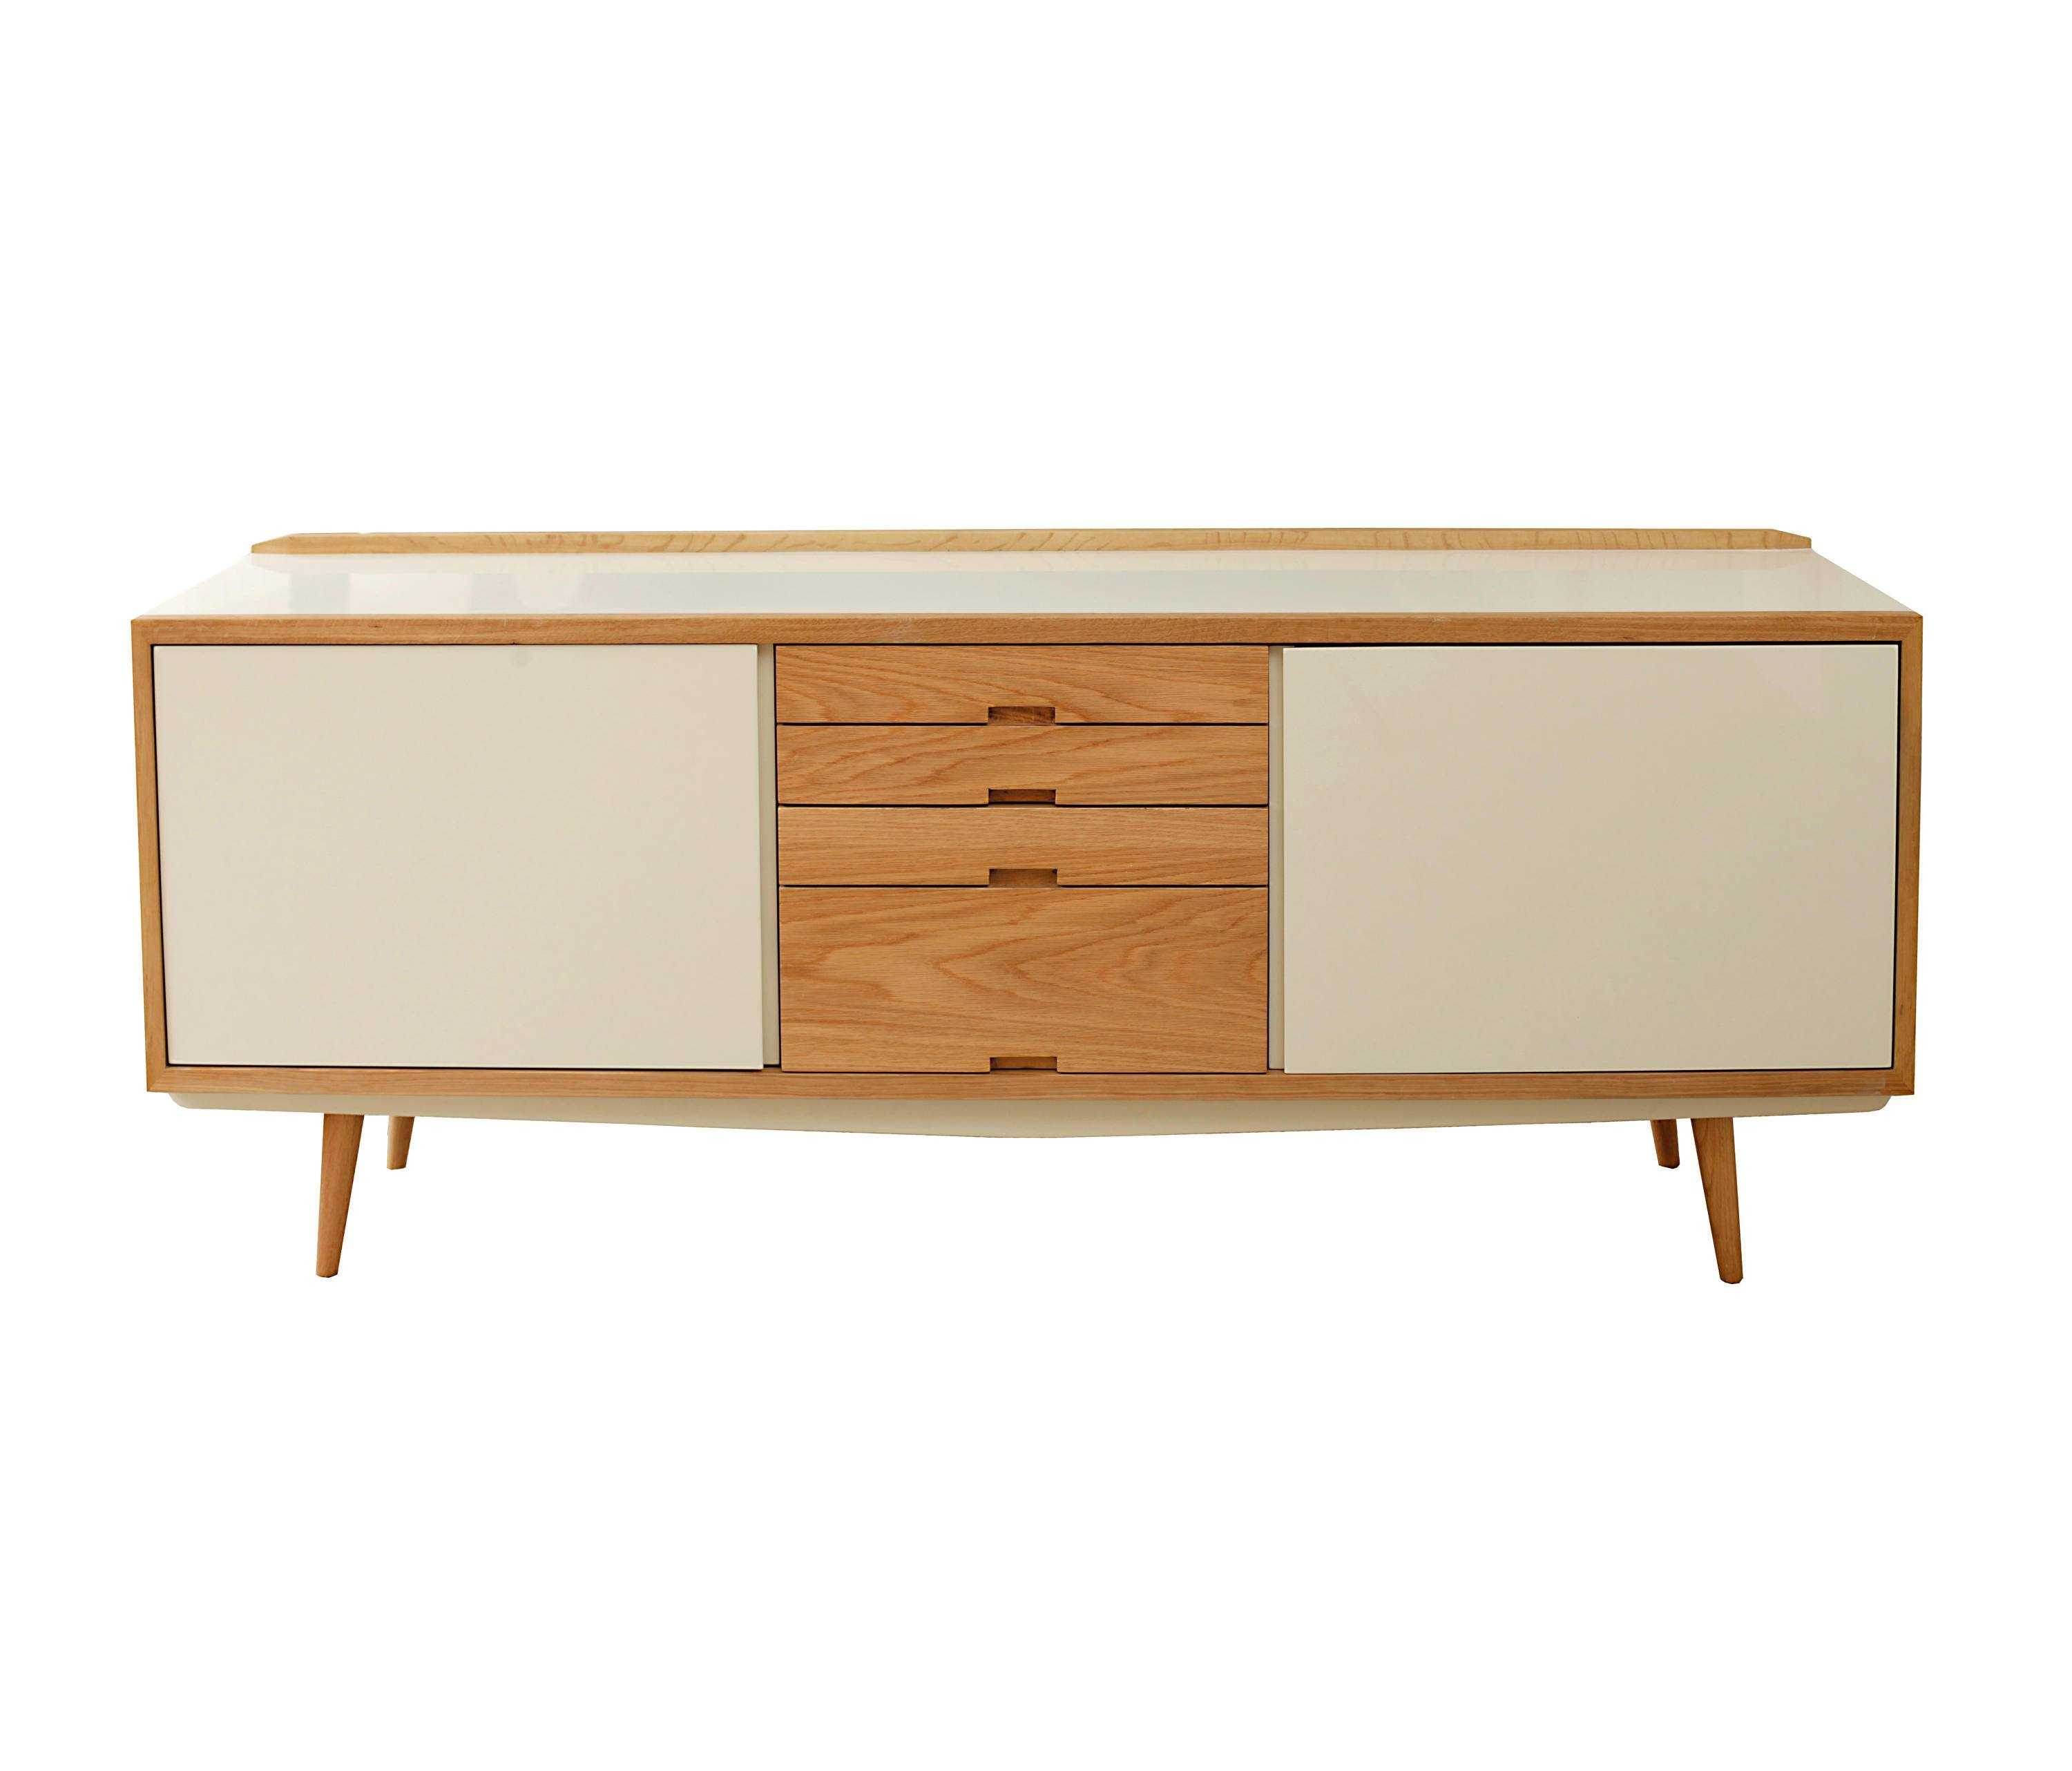 Sideboard - Sideboards From Red Edition | Architonic for Red Sideboards (Image 18 of 30)